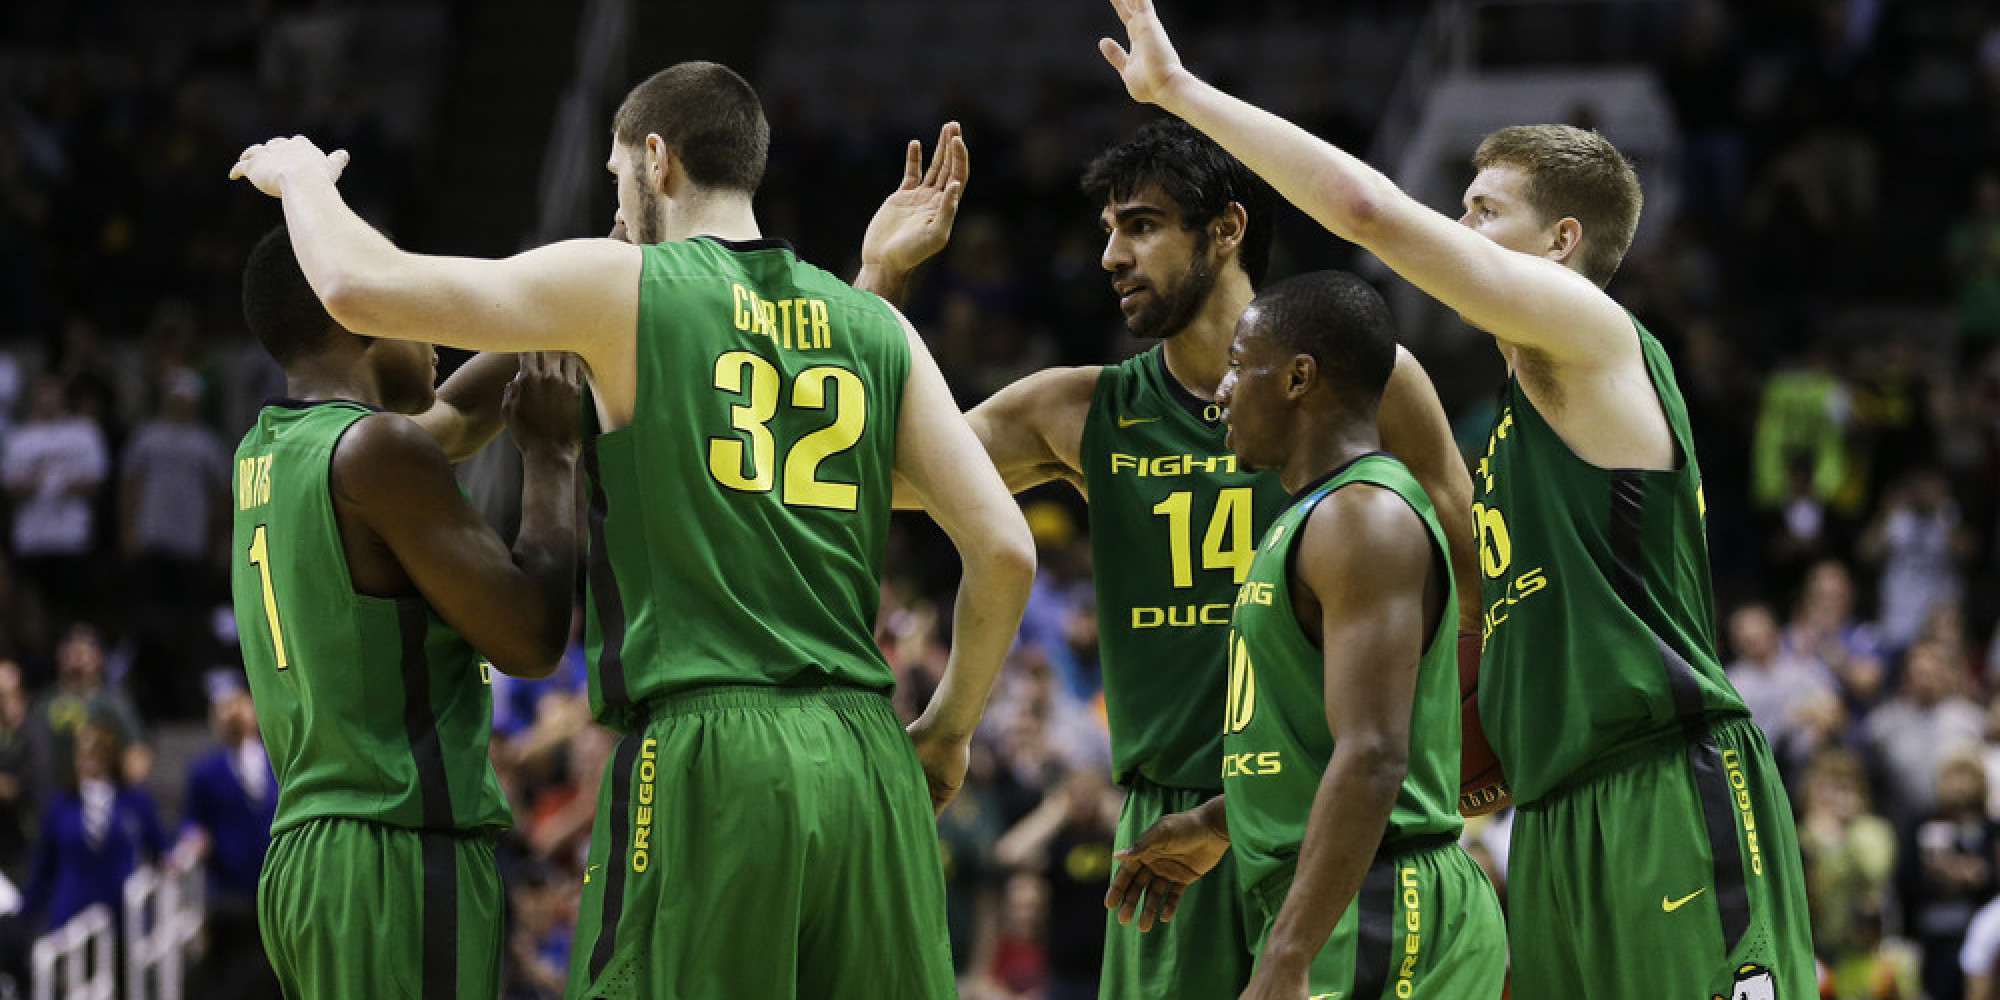 Oregon Basketball Players Dominic Artis, Ben Carter Suspended For Selling Team Apparel